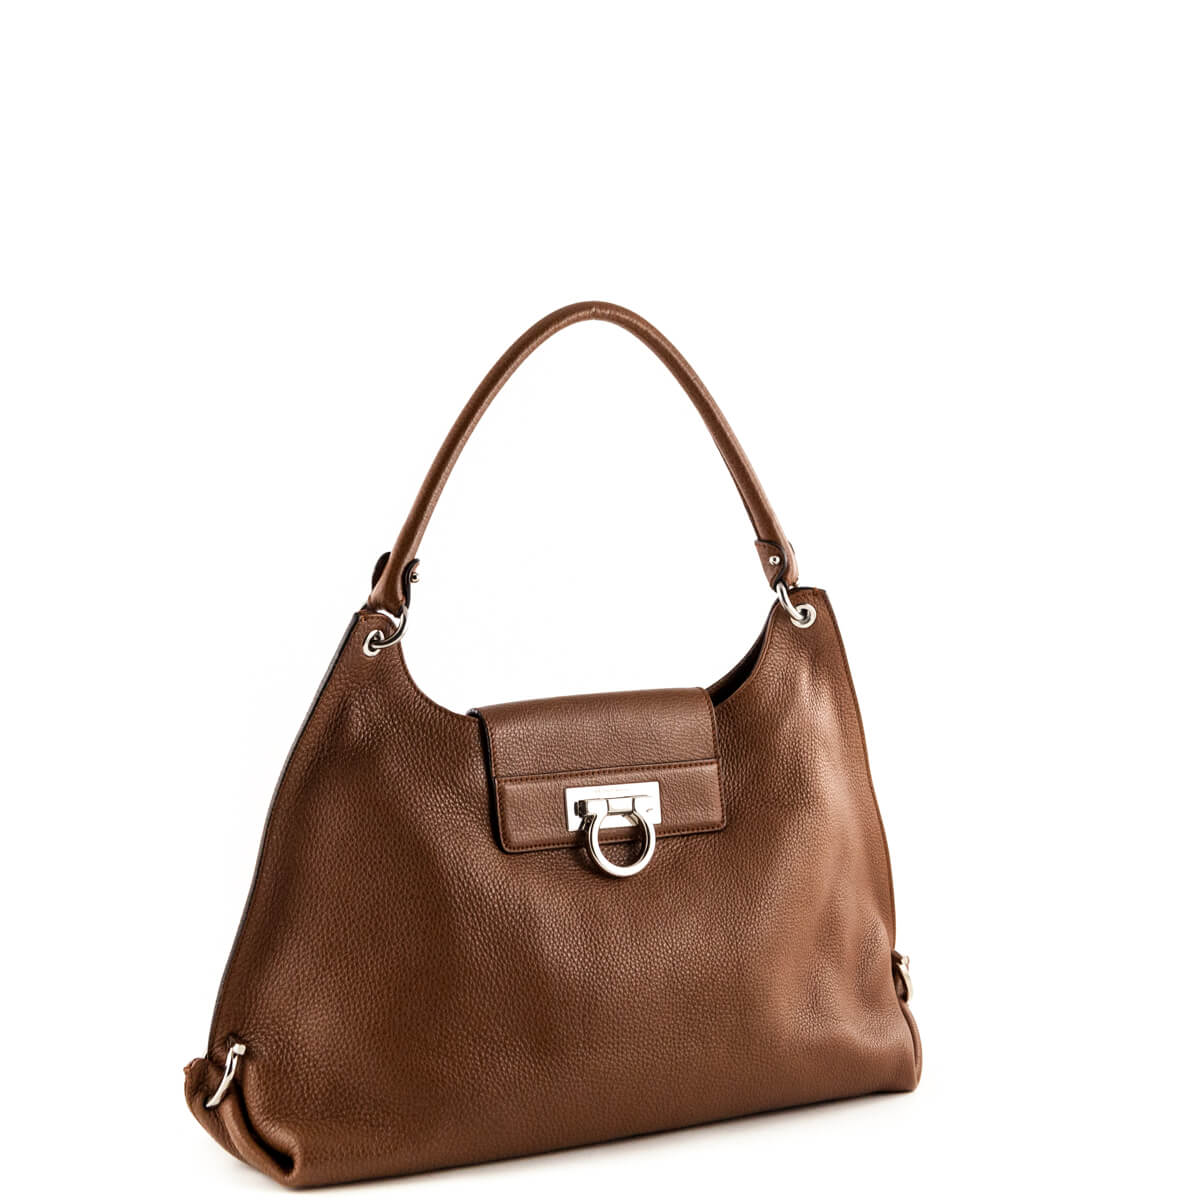 ... Salvatore Ferragamo Brown Pebbled Leather Shoulder Bag - LOVE that BAG  - Preowned Authentic Designer Handbags ... aad2b31f50436